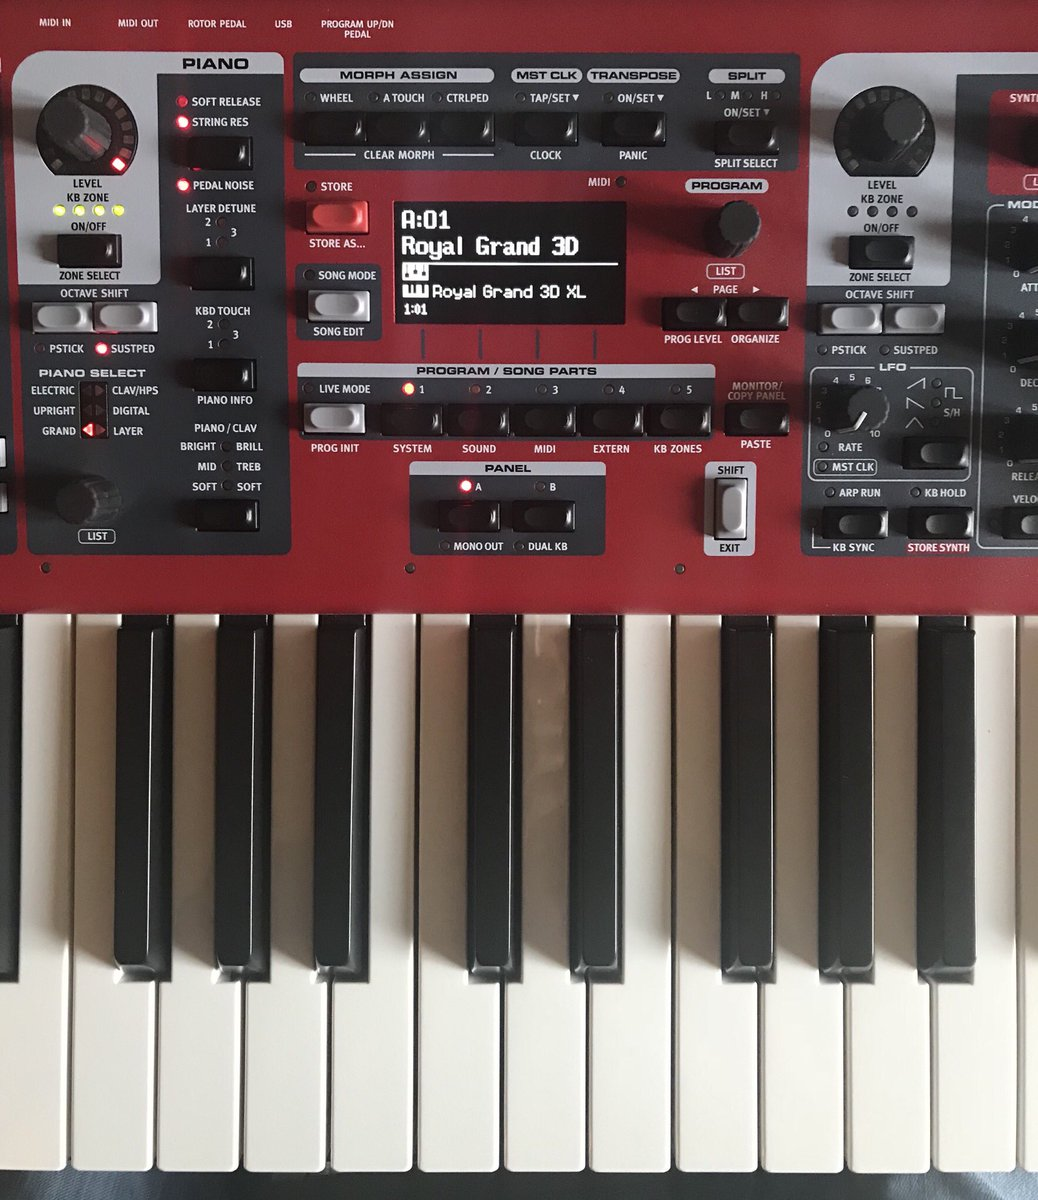 #Nord Stage 3, #Royal Grand 3d, at the moment seems to be the best piano sample for #worship music. I strongly recommend!<br>http://pic.twitter.com/42f5w6SZxk